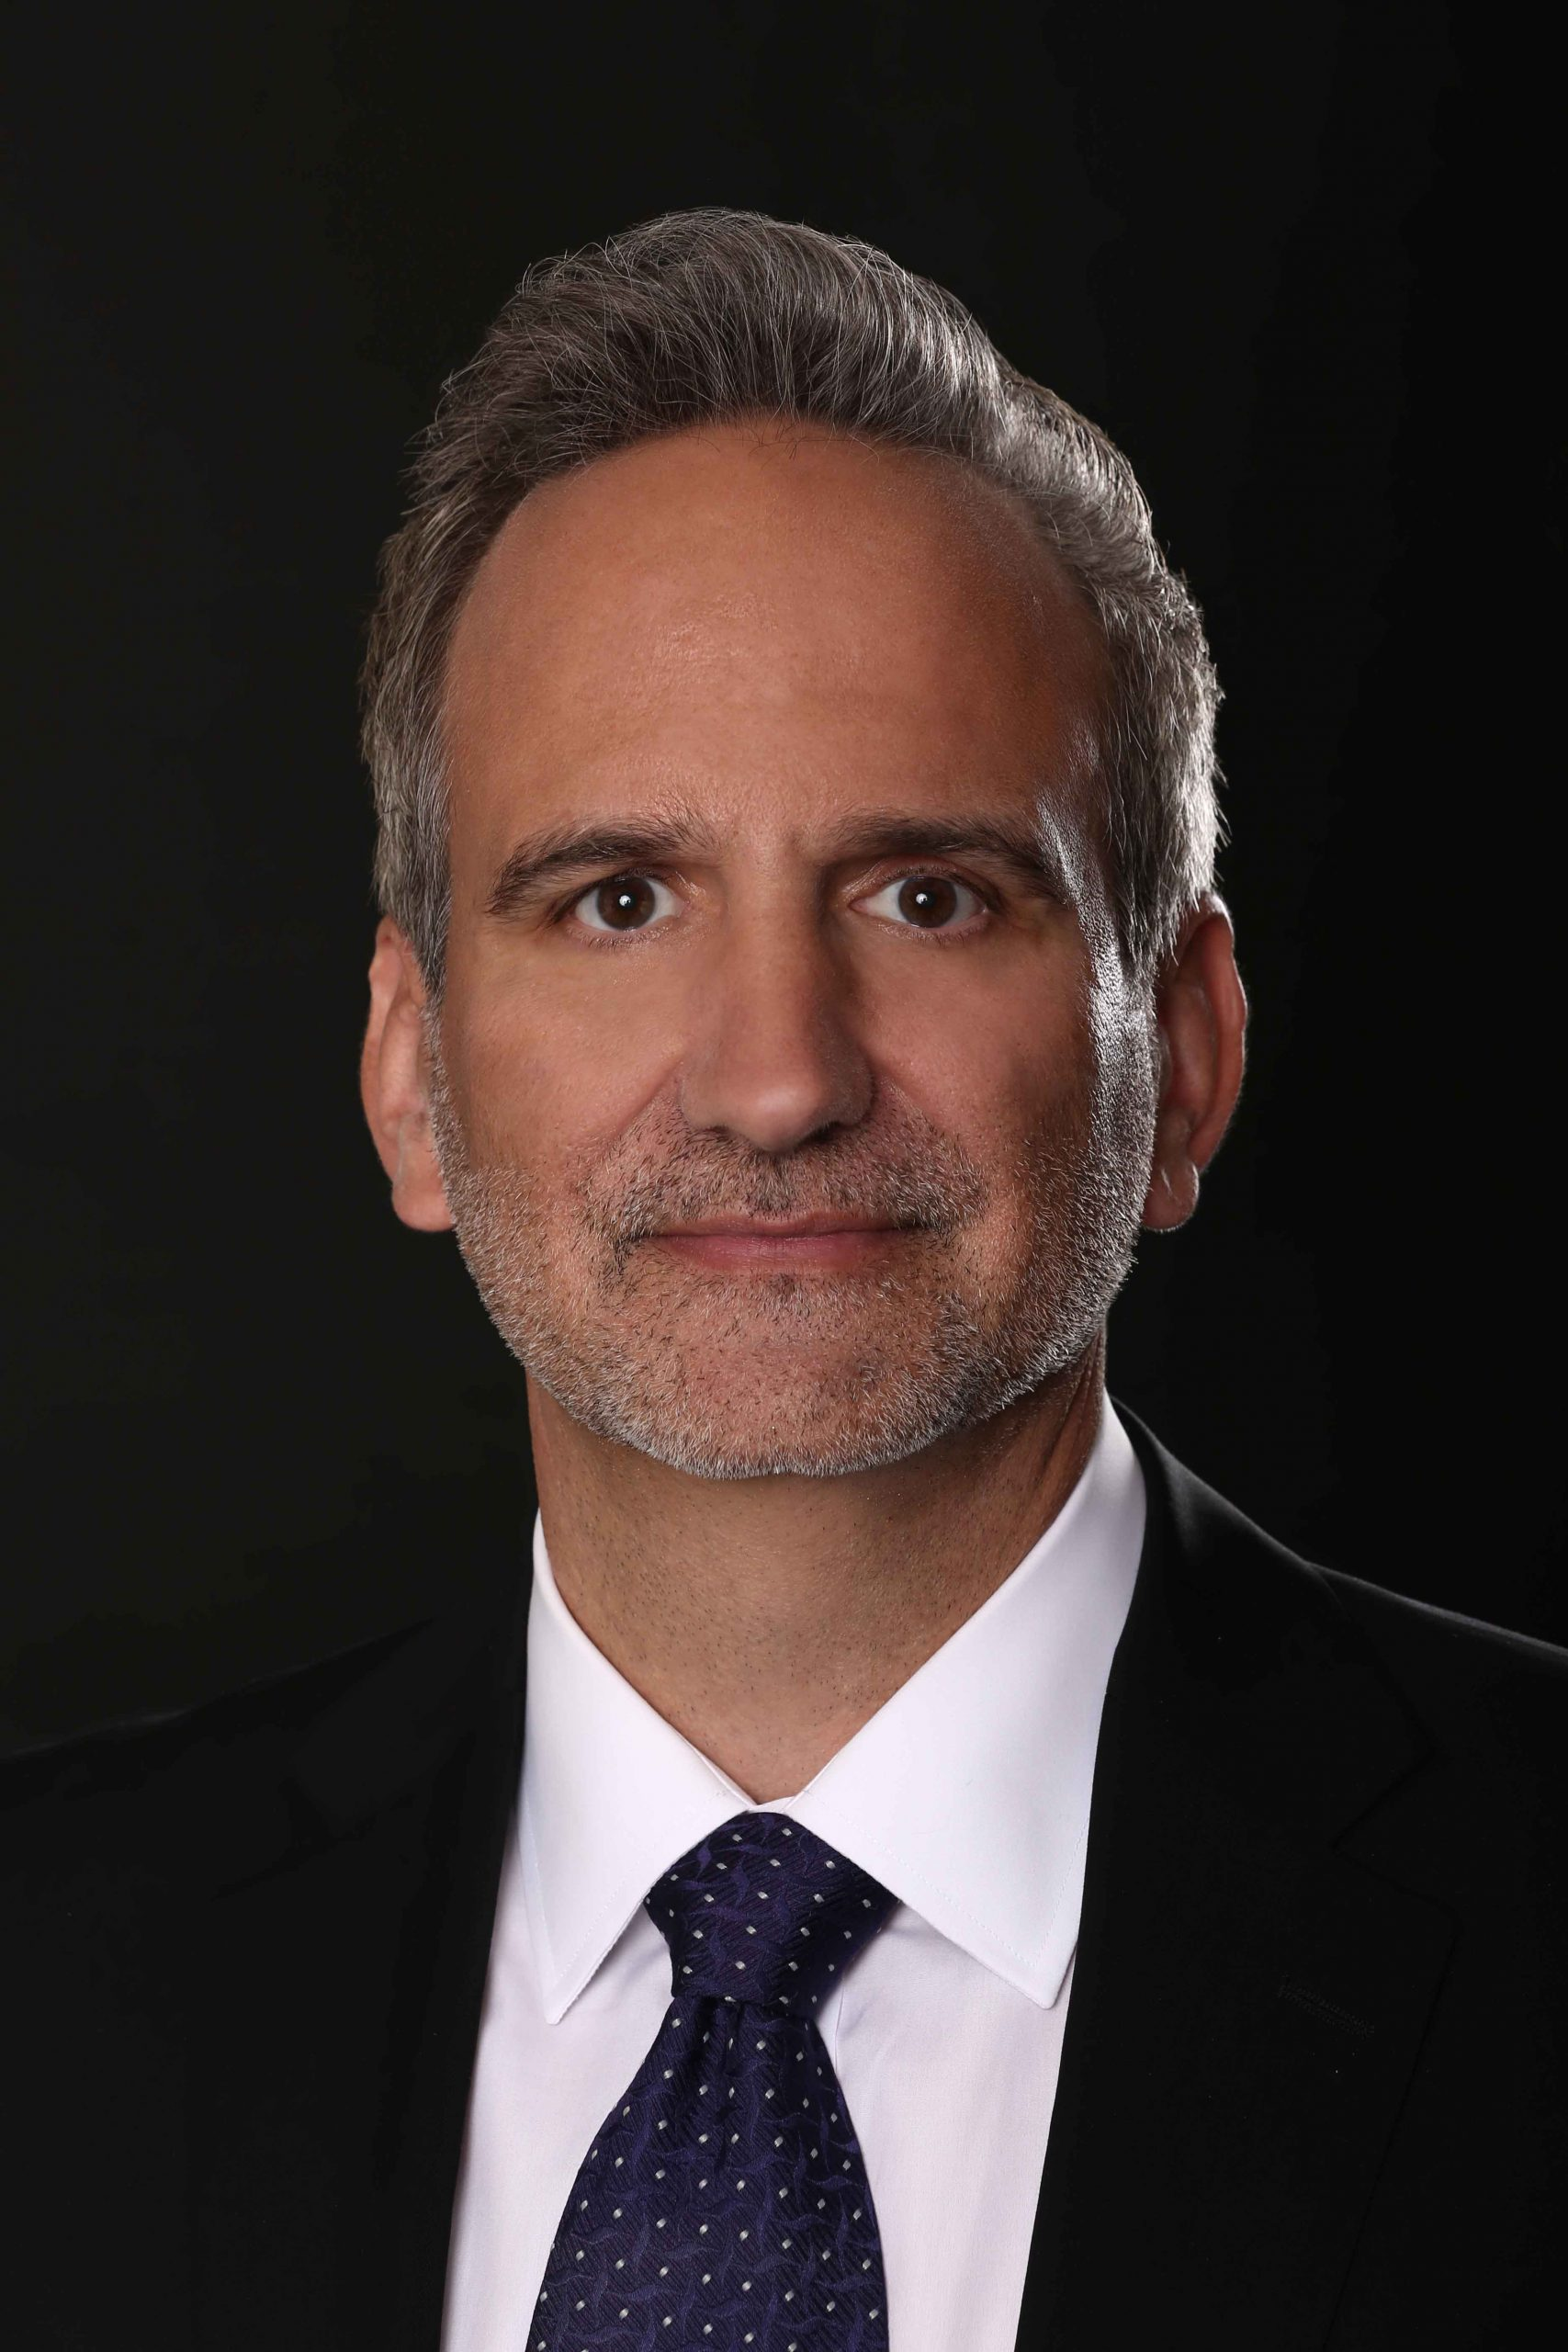 Michael Thornton, the CEO of satellite TV startup Orby TV. (Photo: Orby TV/Handout)